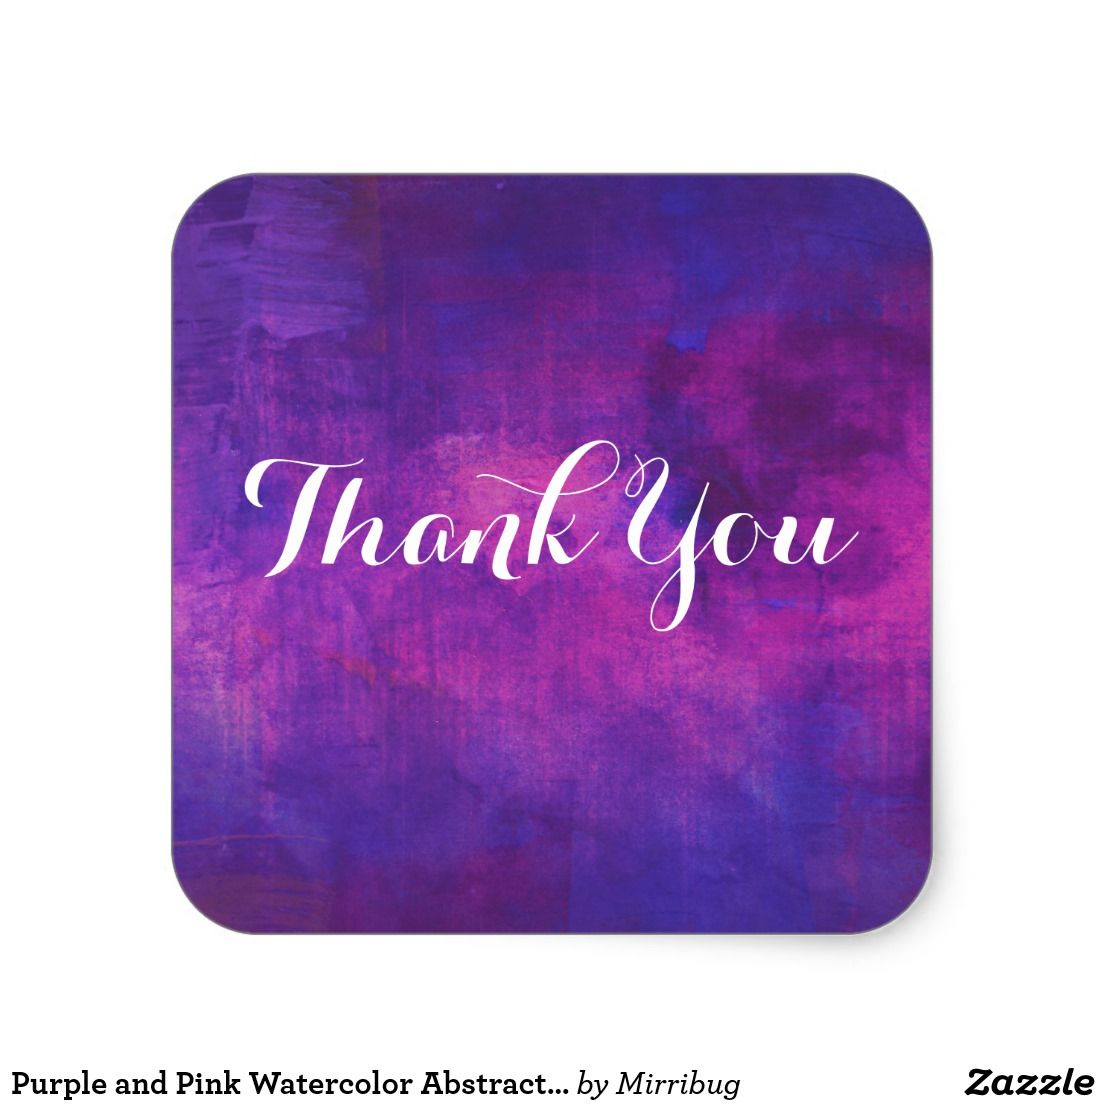 Purple And Pink Watercolor Abstract Thank You Square Sticker Zazzle Com In 2020 Pink Watercolor Abstract Watercolor Thank You Pictures